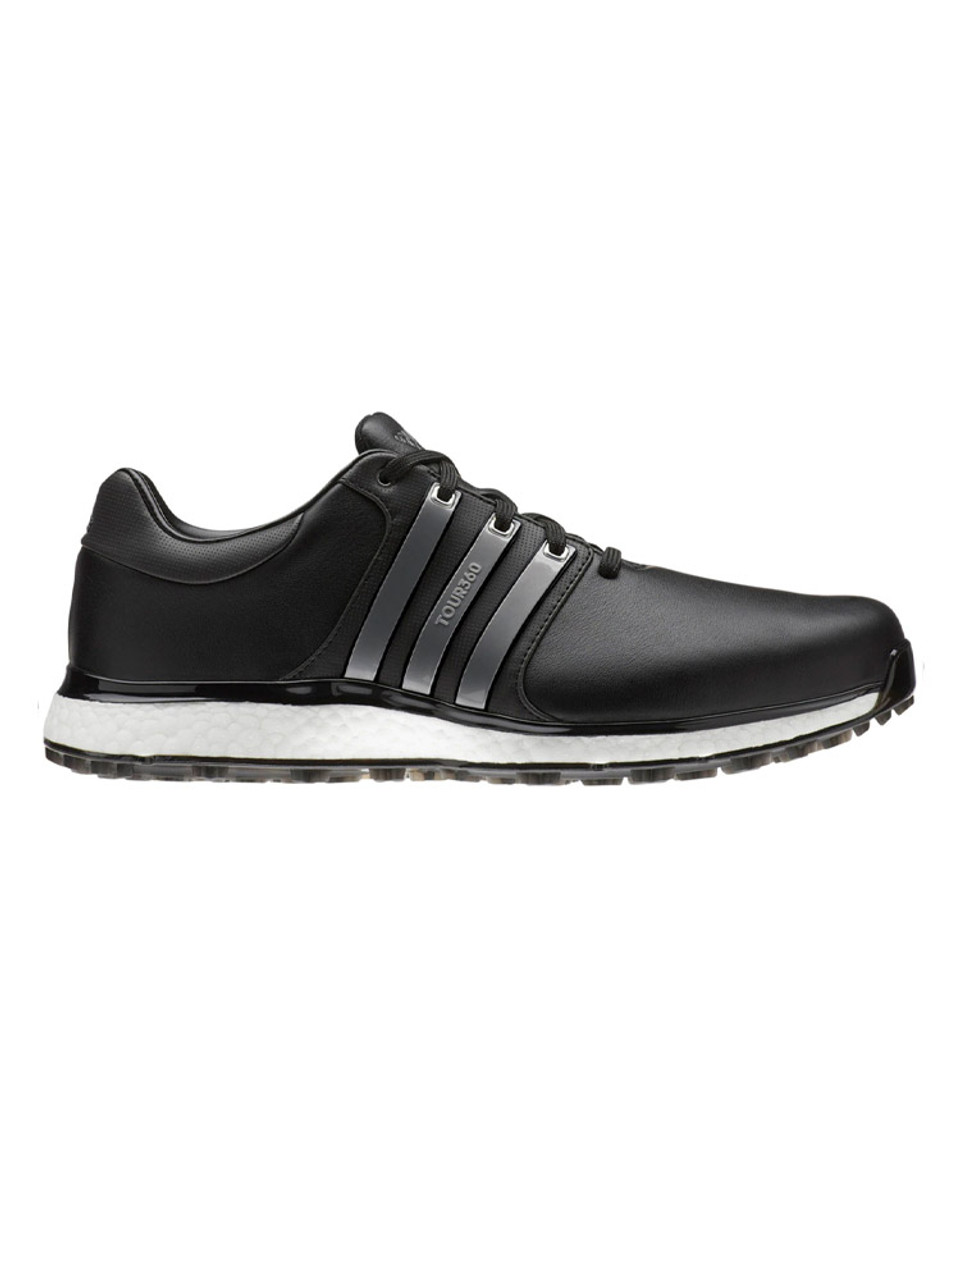 548a51d9cd0265 Adidas Tour360 XT-SL Golf Shoes - Core Black Iron Met White - Mens ...